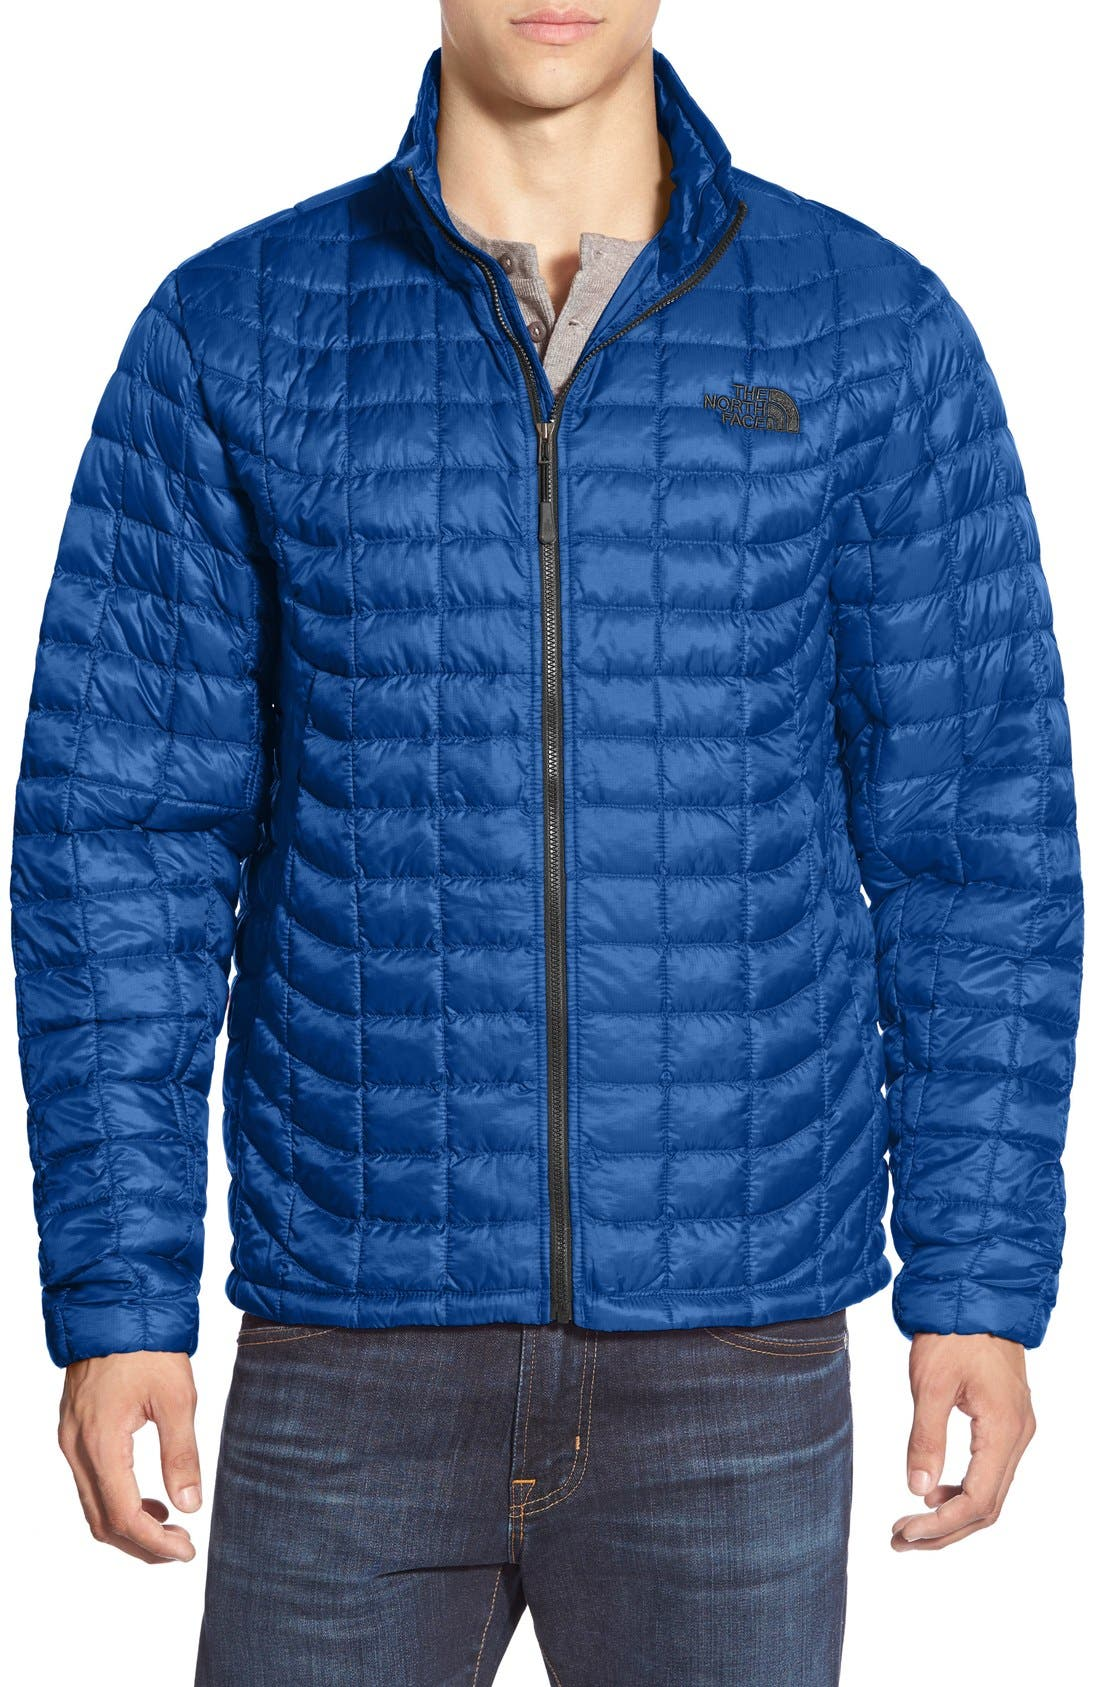 PrimaLoft<sup>®</sup> ThermoBall<sup>™</sup> Full Zip Jacket,                             Main thumbnail 22, color,